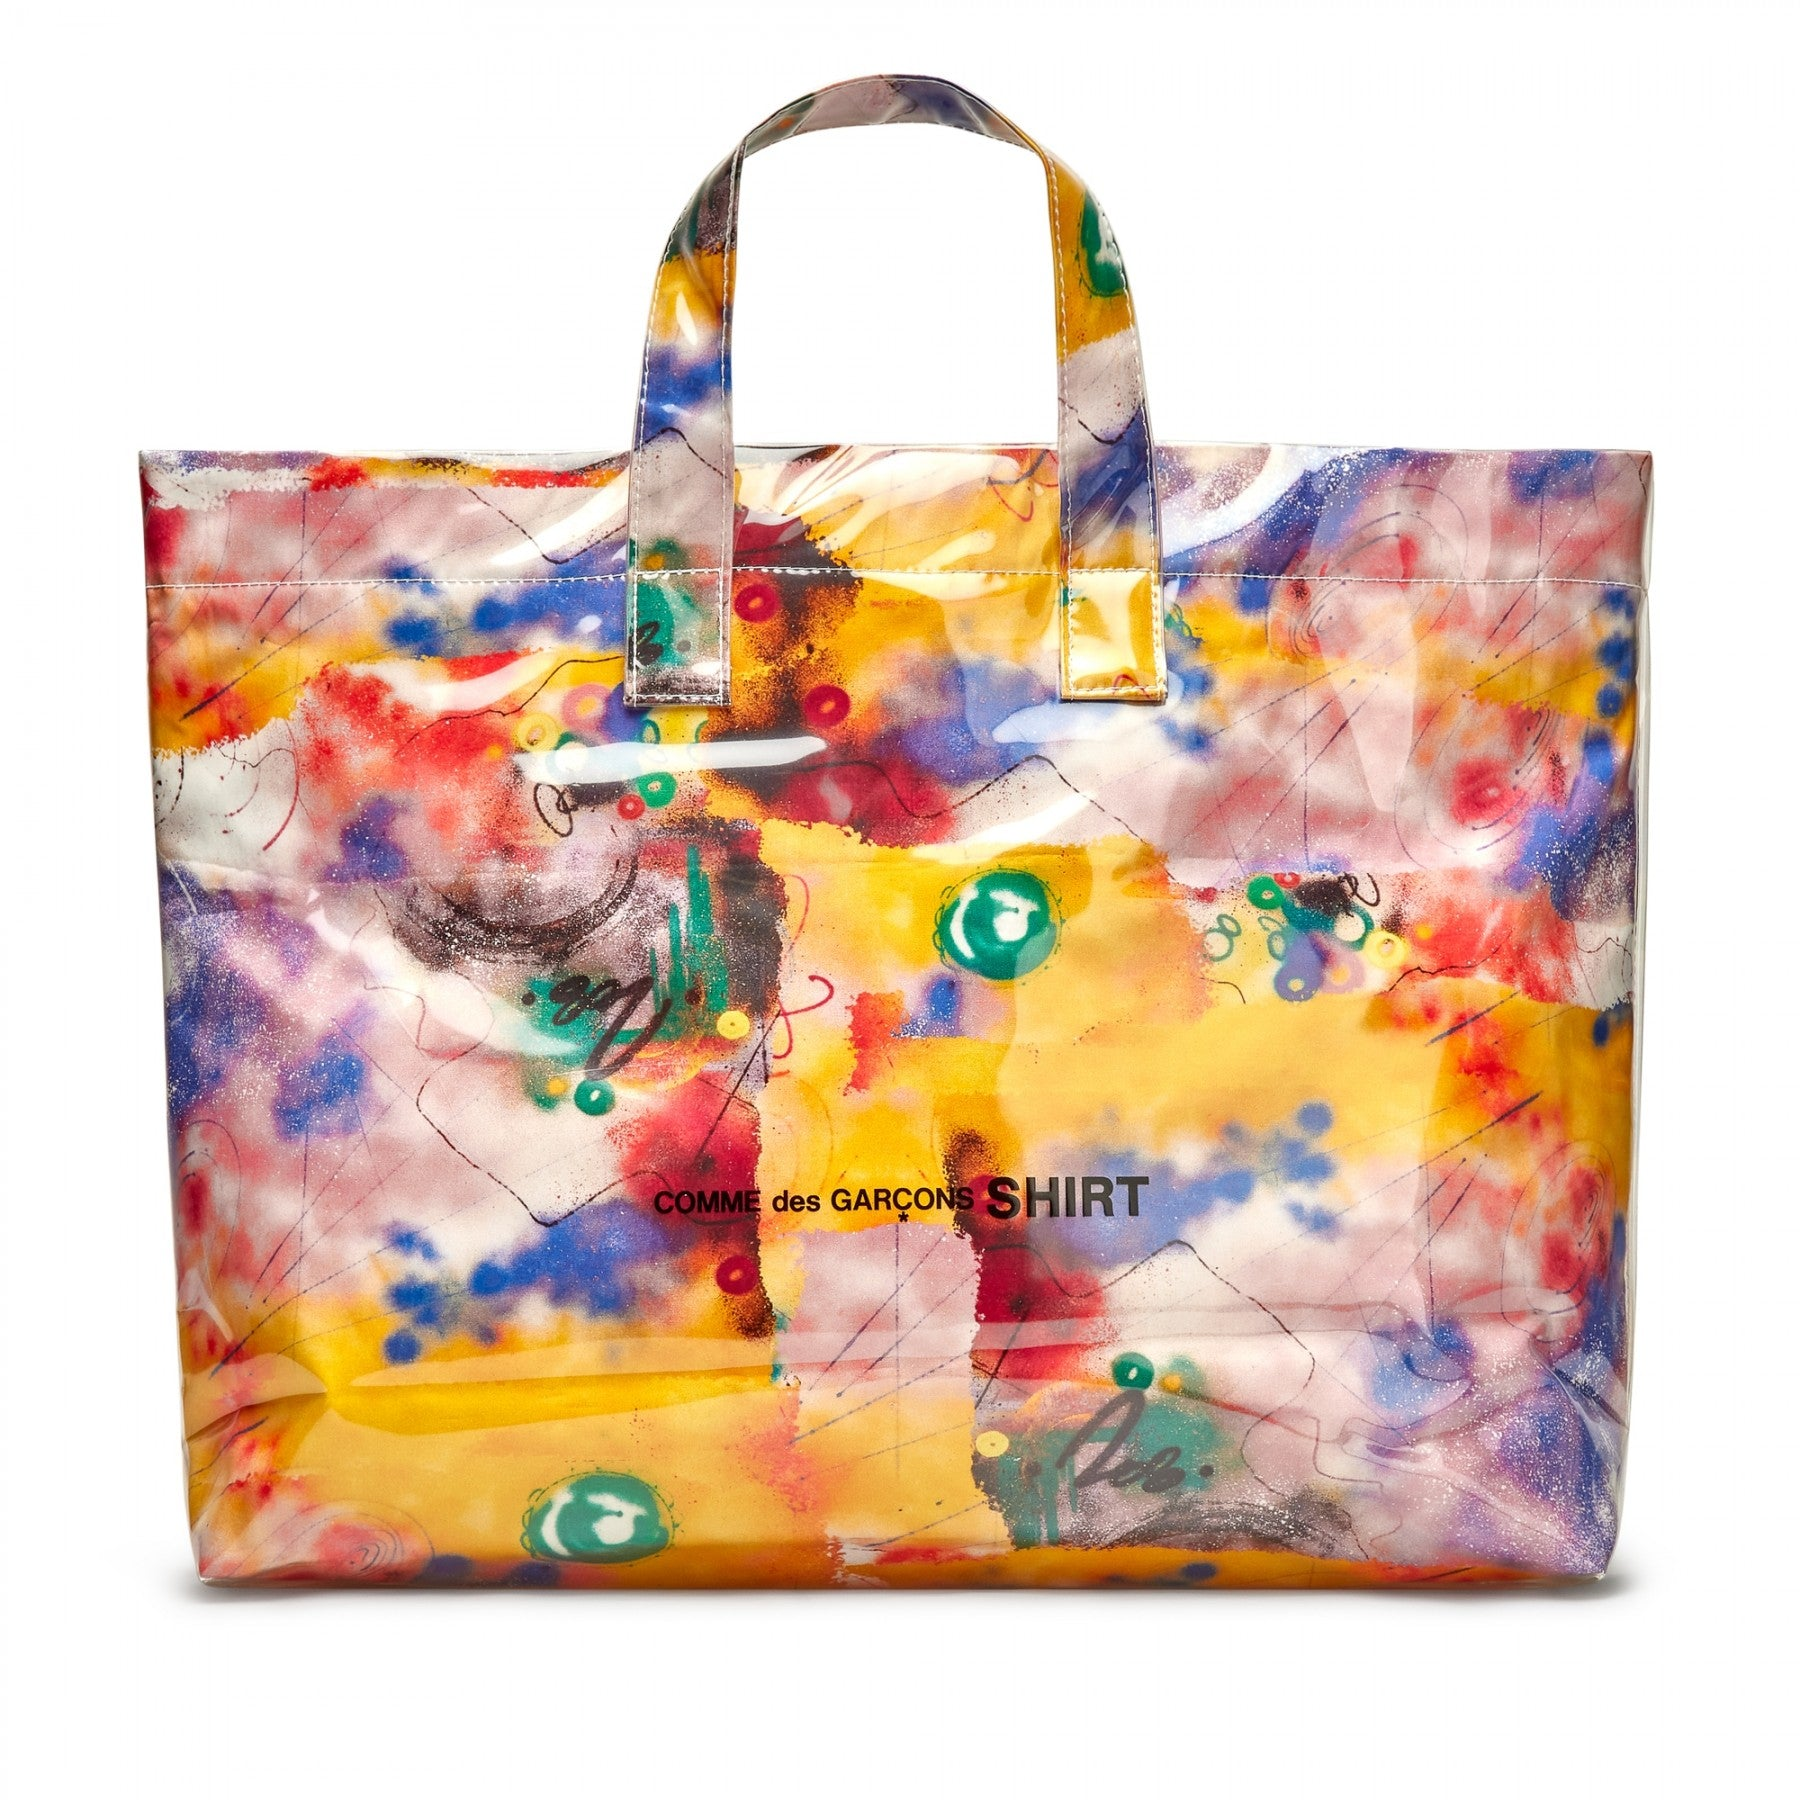 Yellow CDG SHIRT x Futura Tote Bag (Pre-order)